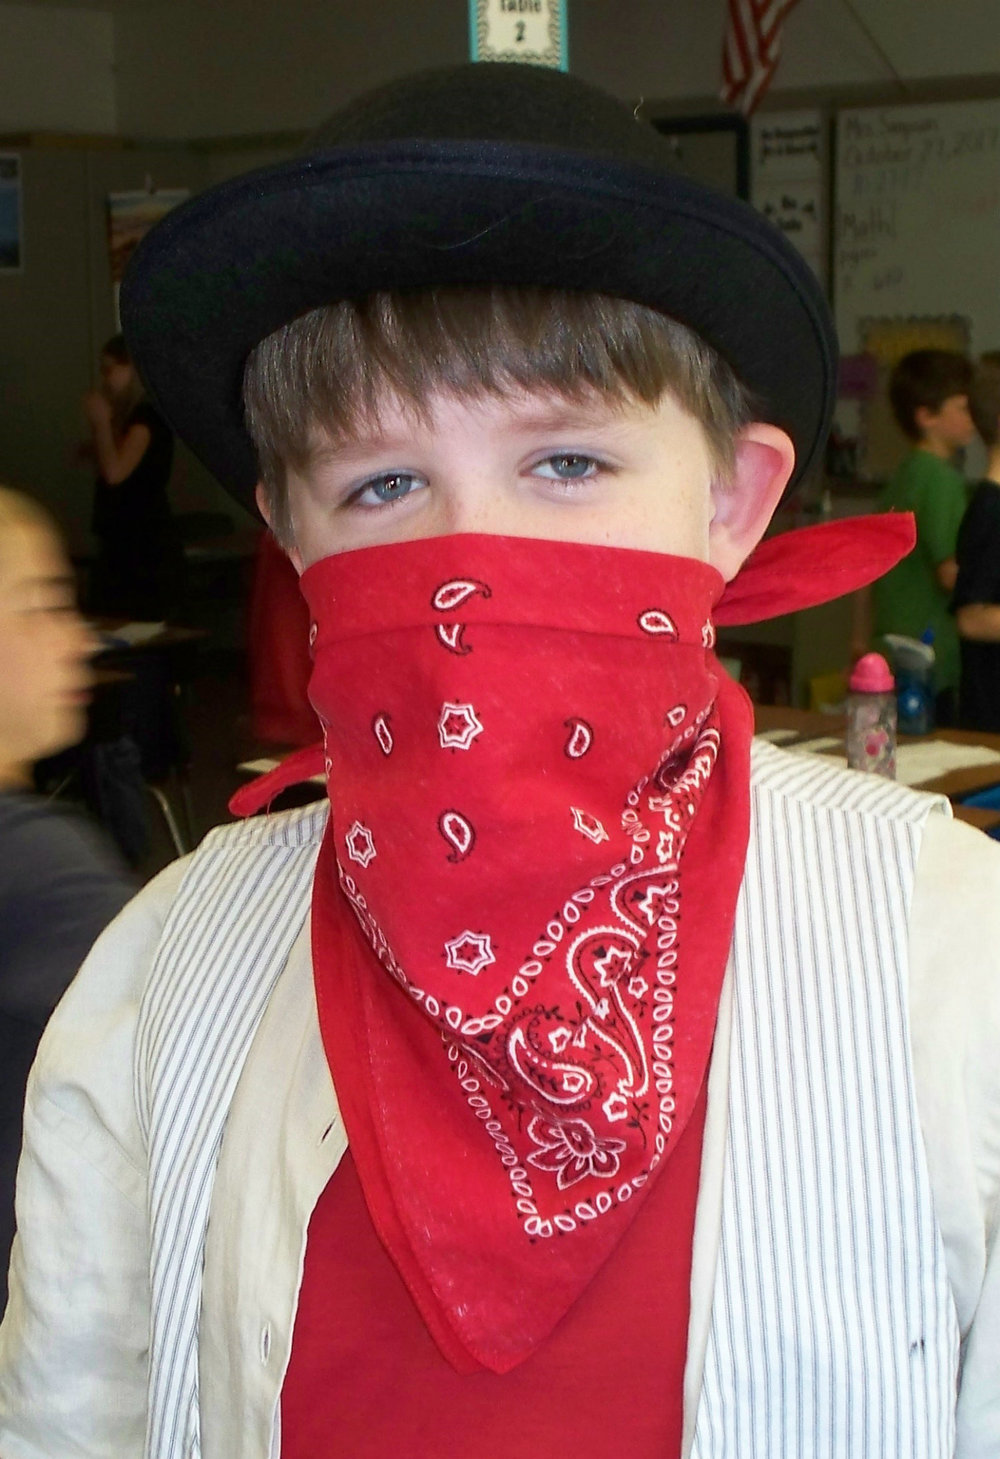 boy_red_bandana.jpg